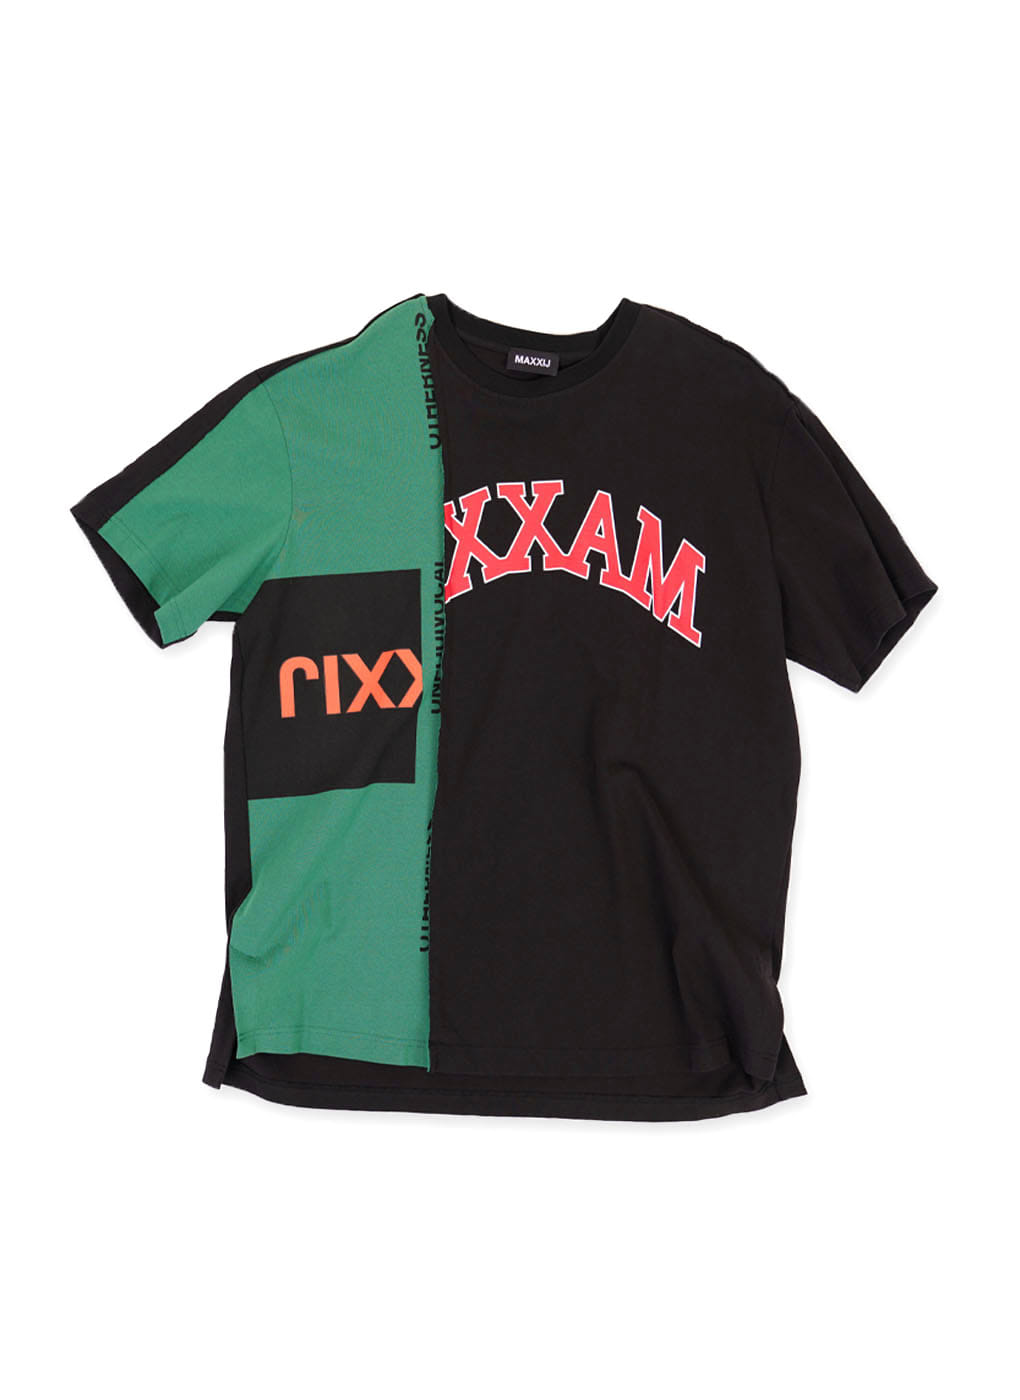 Green/Black Color Block Collage Printed T-shirt